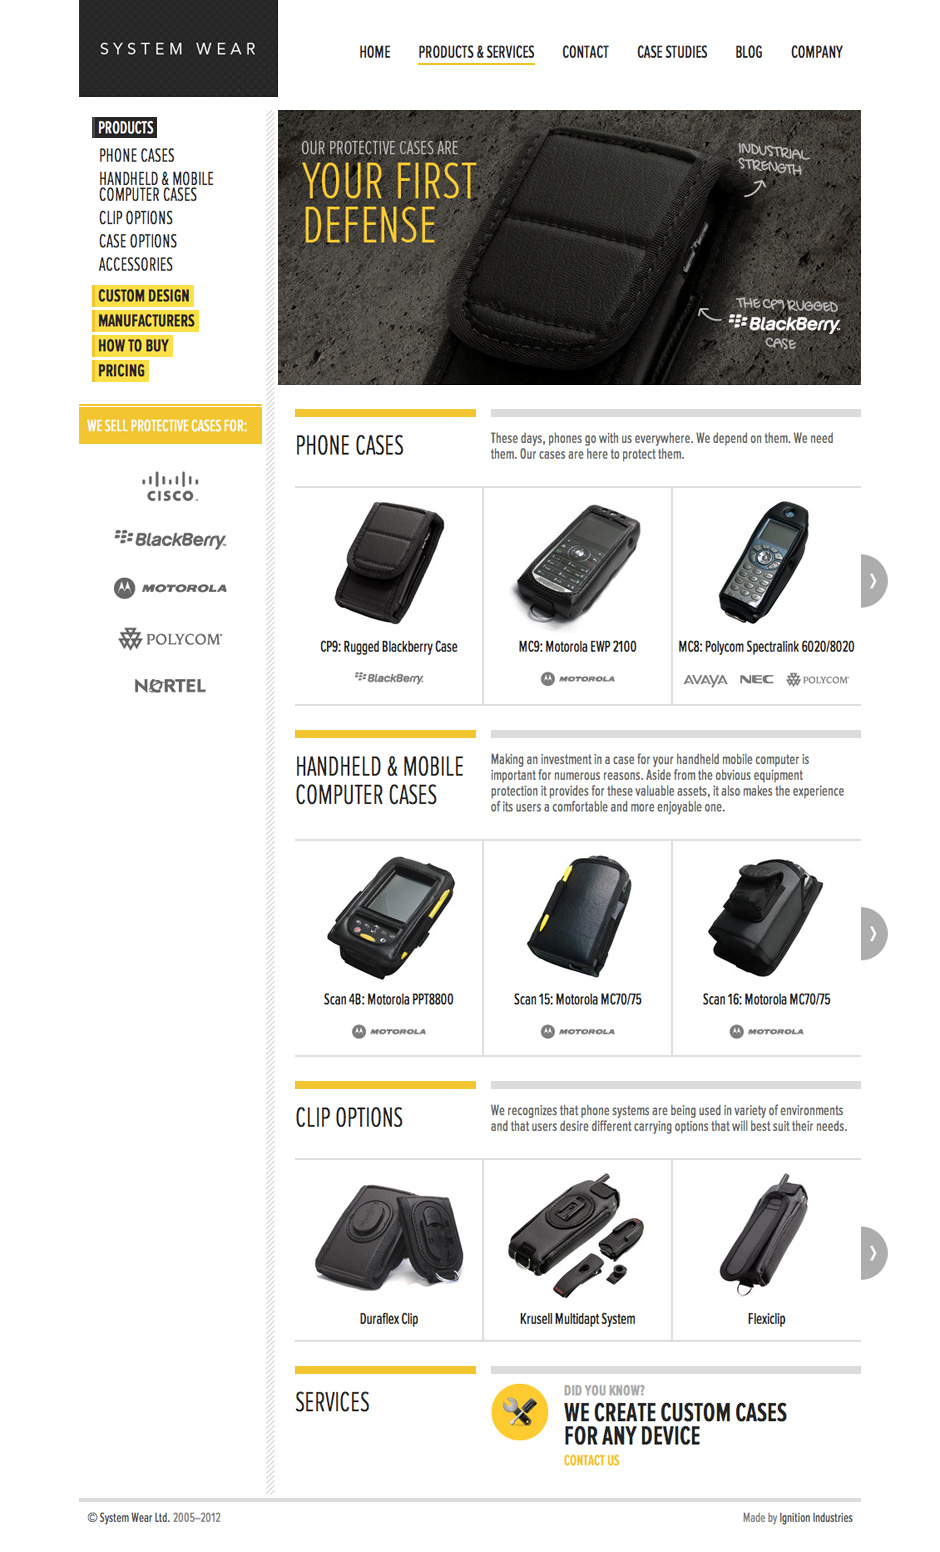 System-wear-website-1